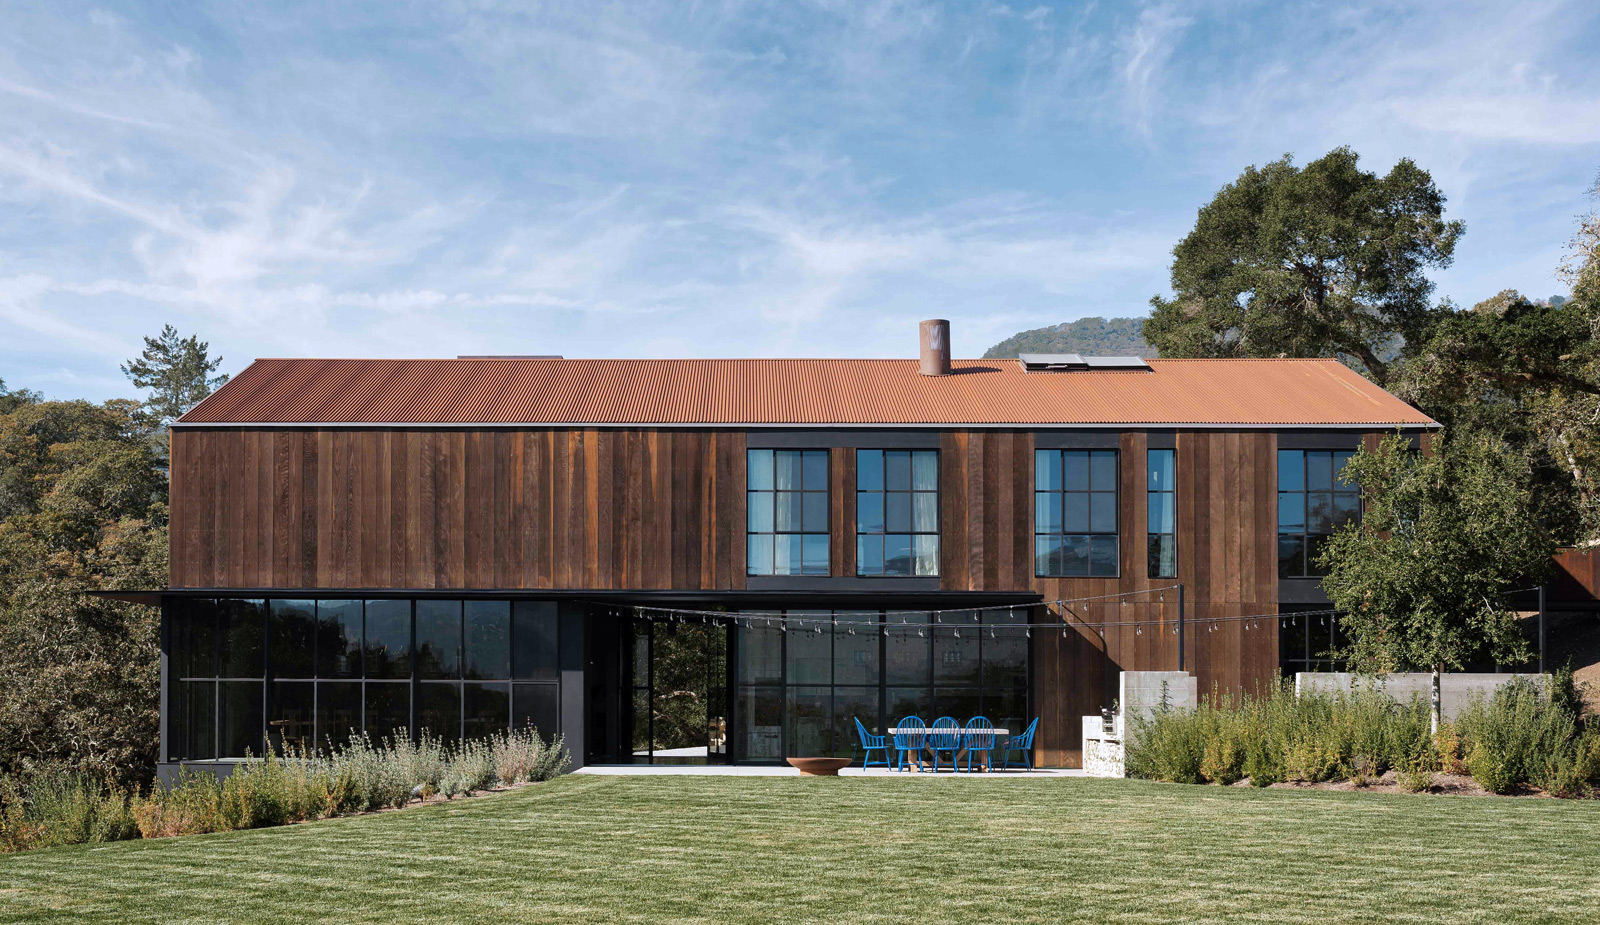 The Big Barn House in Sonoma Valley by Faulkner Architects